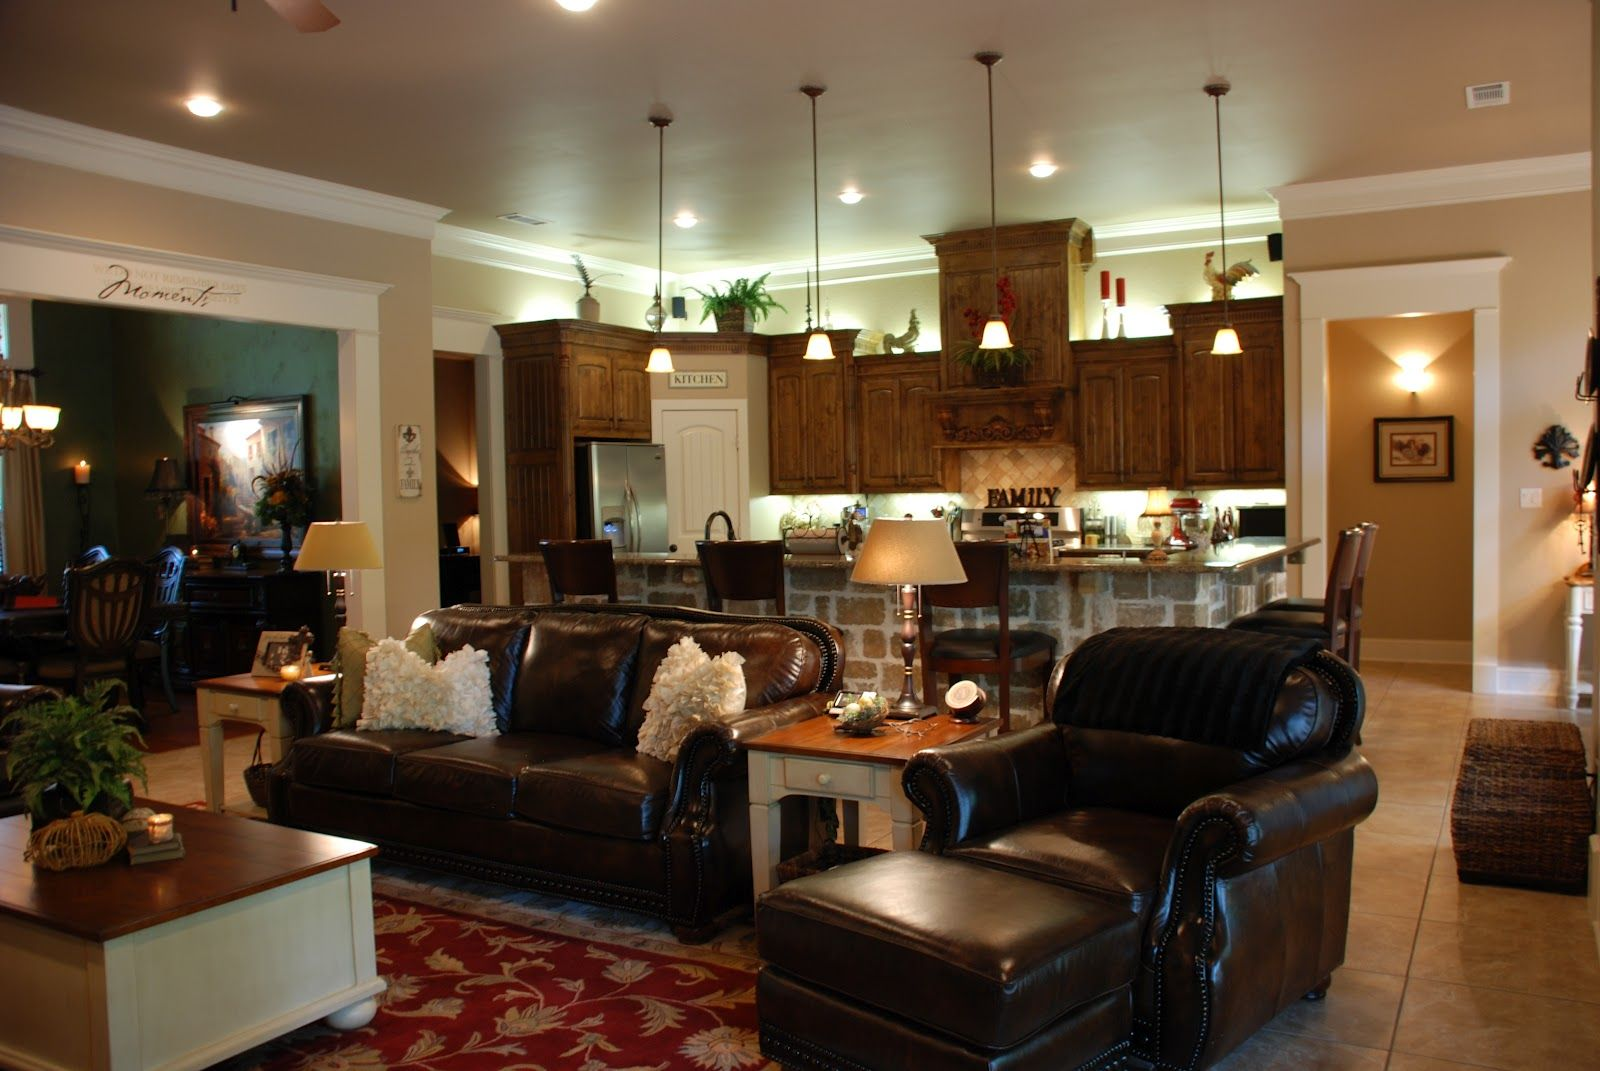 Open Concept Kitchen Living Room Designs One Big Open Space You Can E Living Room And Kitchen Design Open Concept Kitchen Living Room Dining Room Cozy